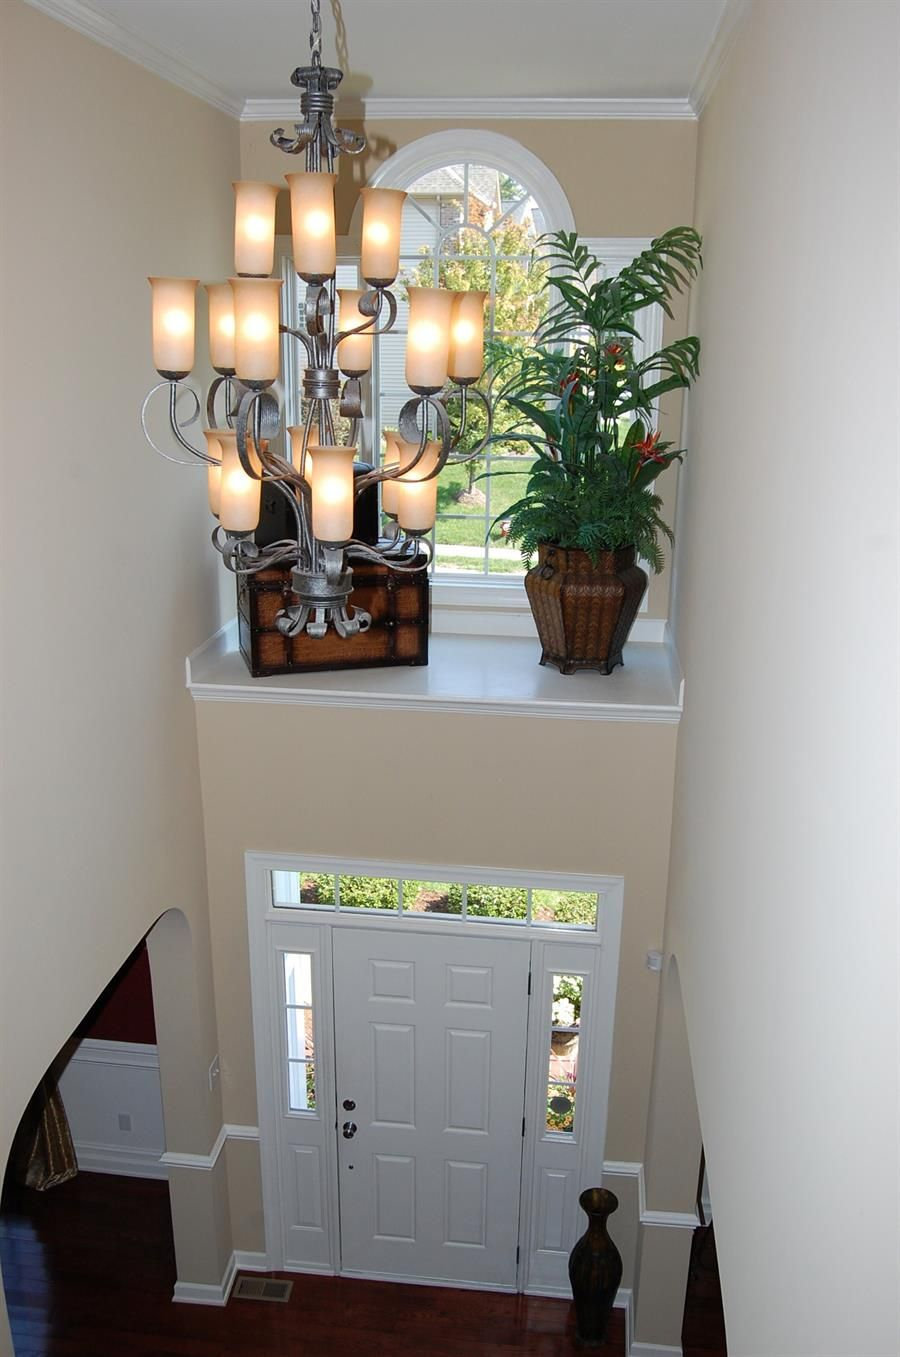 two story foyer with shelf above door with window. What